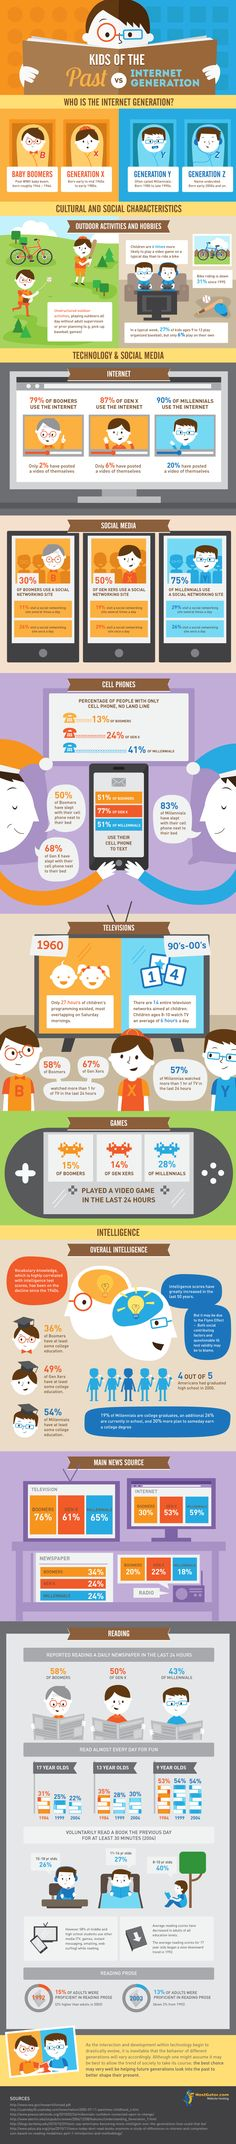 kids-of-the-past-vs-kids-of-the-internet-generation_51f6d43068a26.png (894×8124)